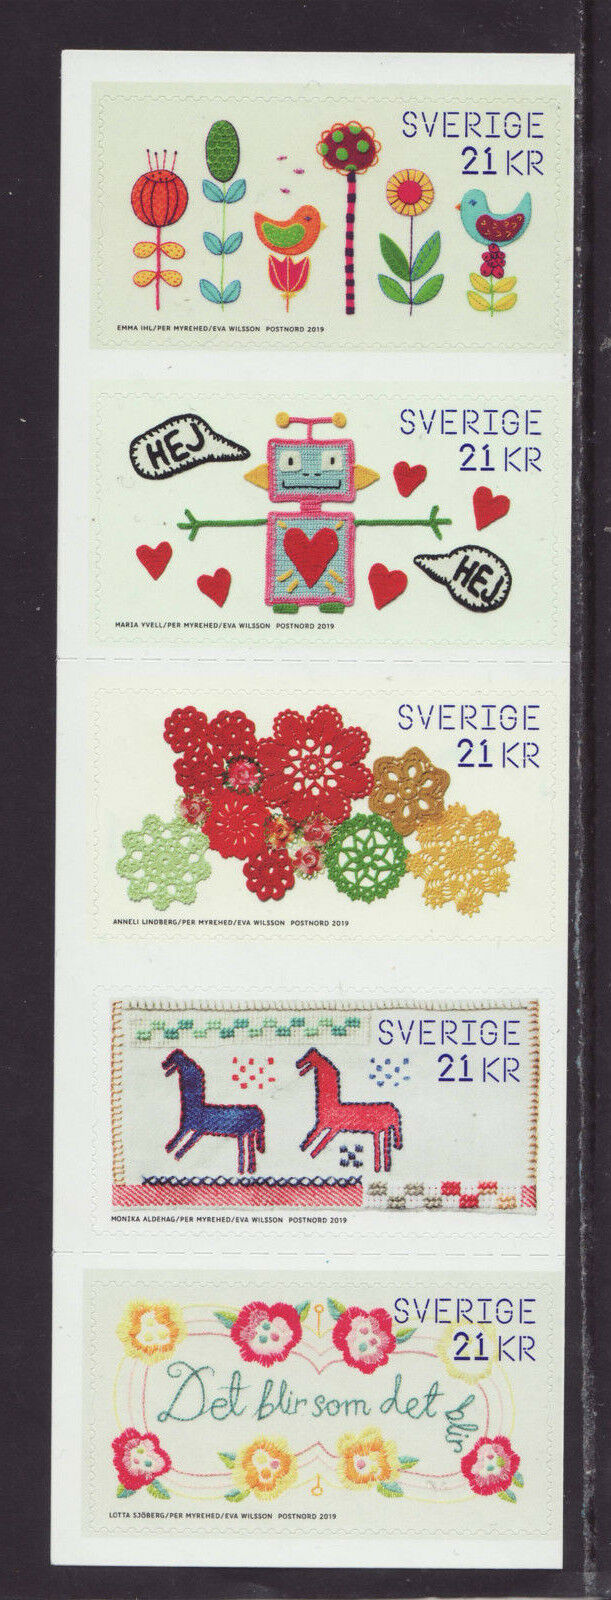 Sweden - The Power of Handicrafts (January 10, 2019) booklet pane of 5